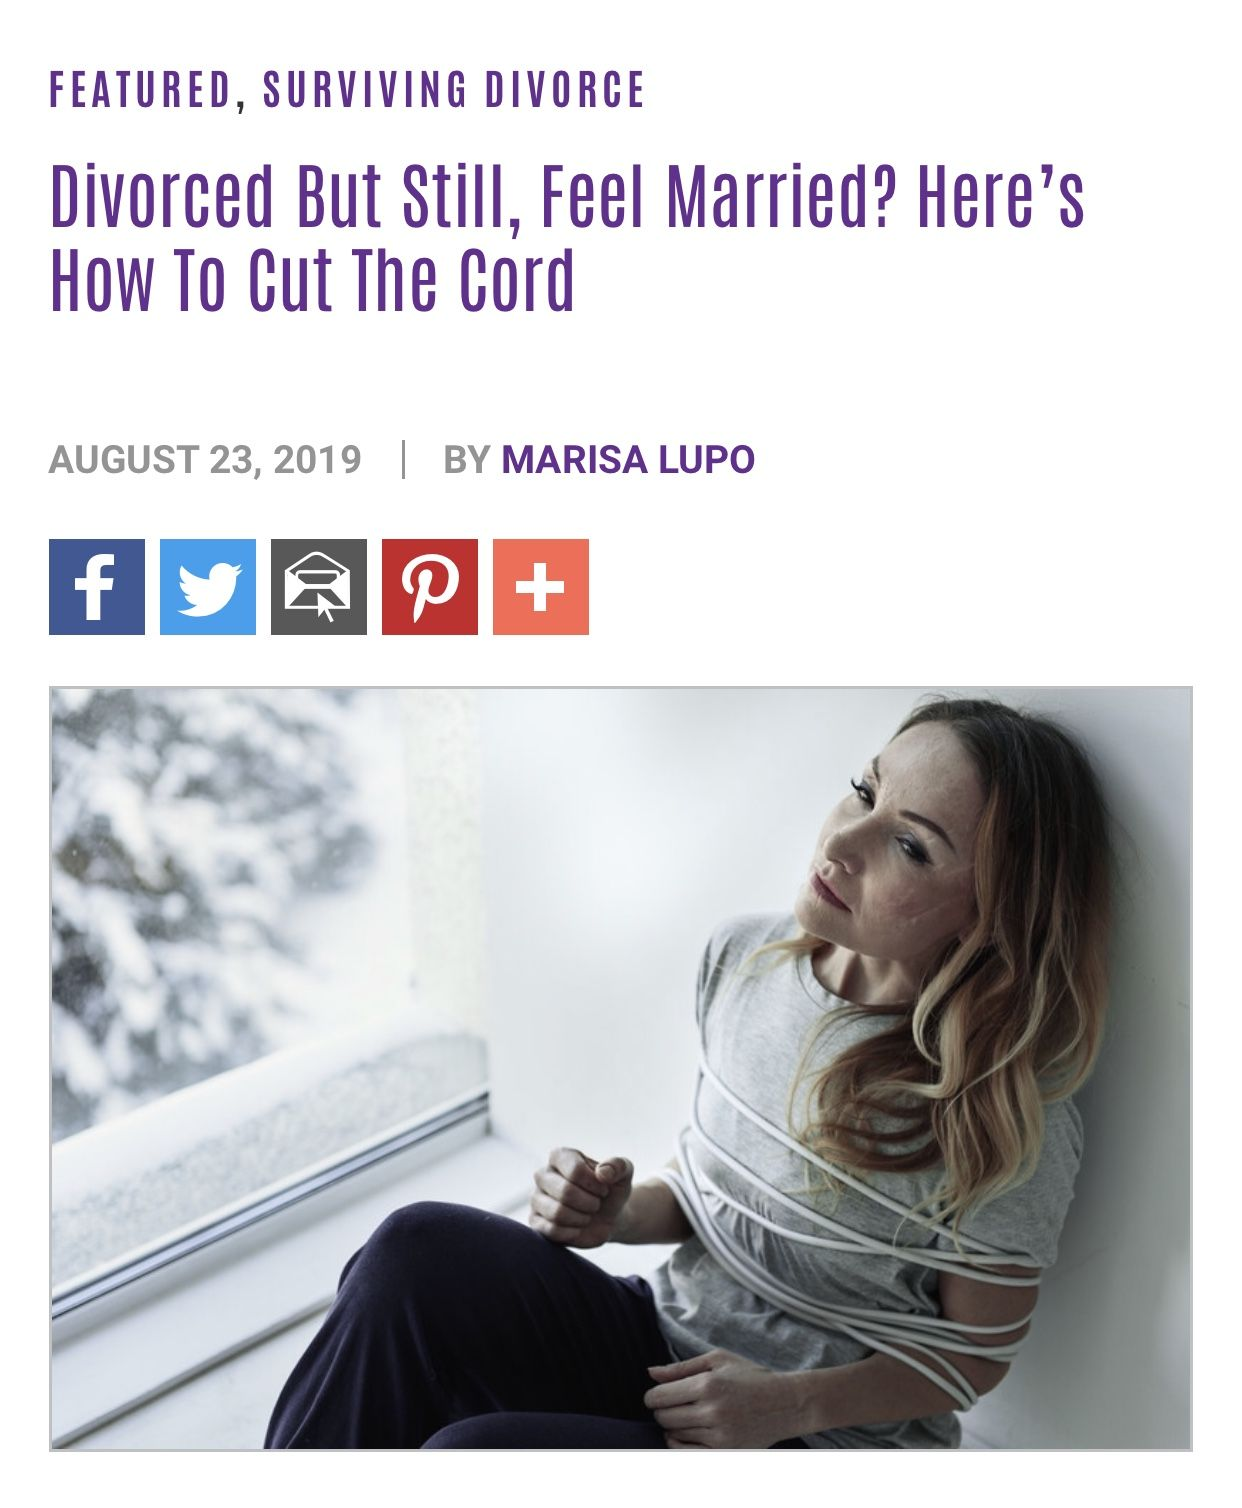 Pin on Divorce recovery